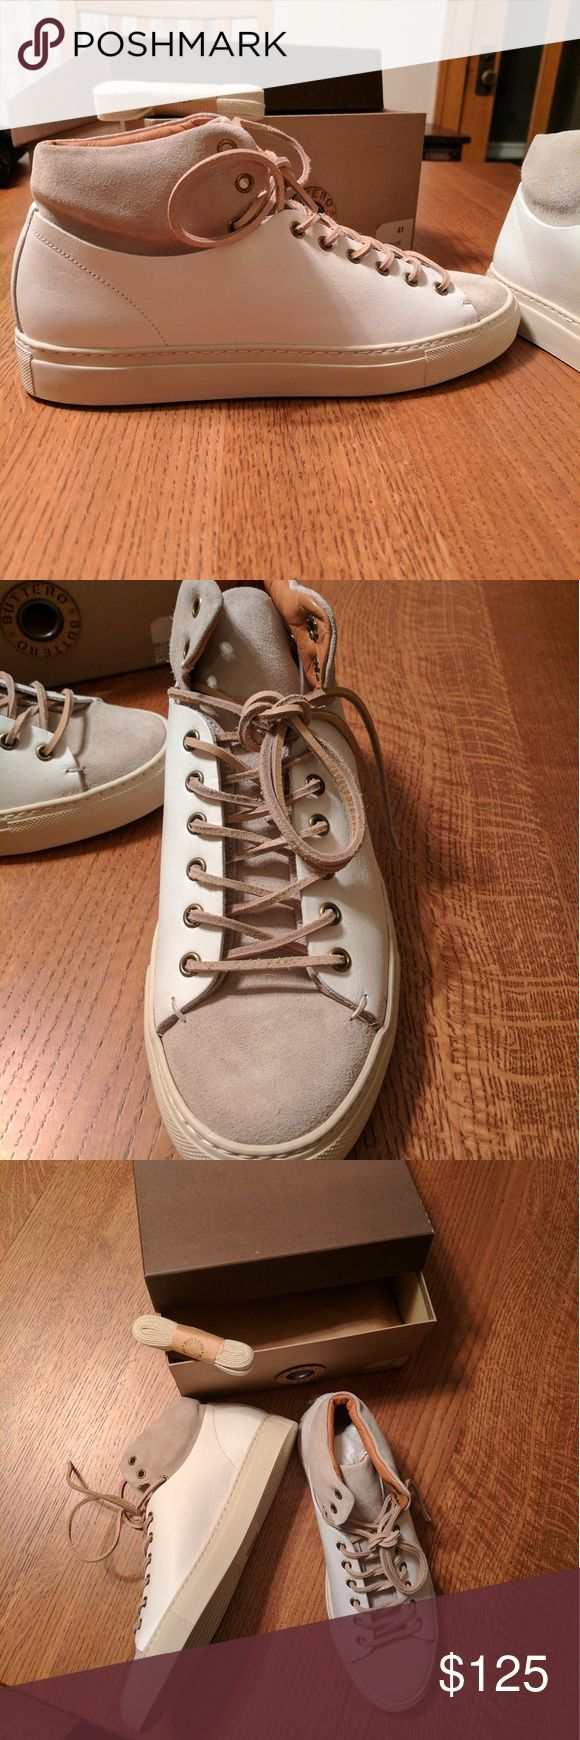 Mens high top sneakers Buttero European men's sneakers; cream and tan canvas high top sneakers; come with leather laces as well as additional laces. Men's size 41 in Europe and it translates to an 8 I believe. Never been worn, brand new. Shoes Sneakers